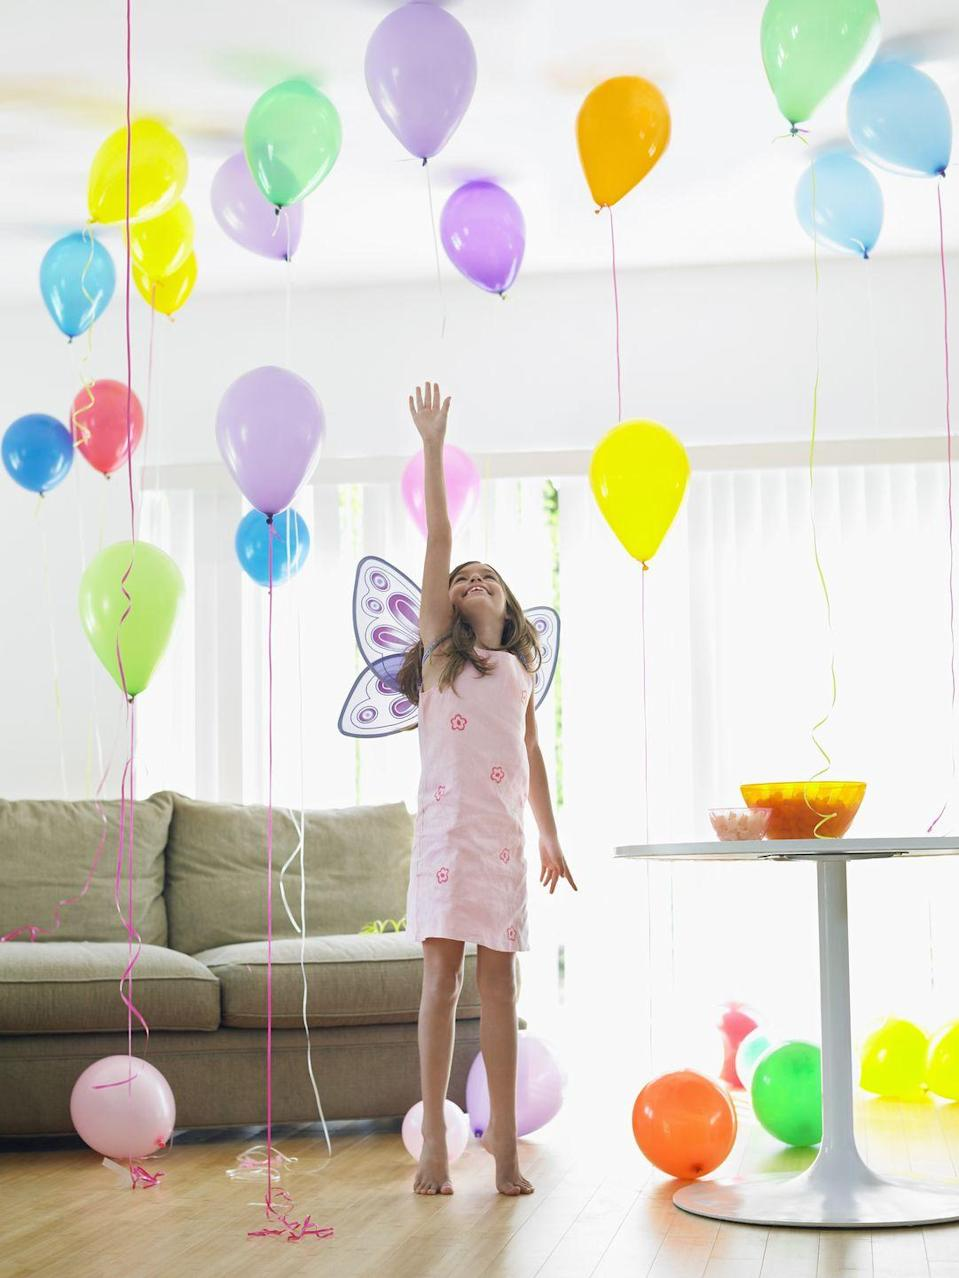 """<p>You can capture that whimsy and fun of a costume party over Zoom. Come up with a theme. (Think: a virtual masquerade ball, a 1970s extravaganza, a <em><a href=""""https://www.oprahmag.com/entertainment/a32174214/tiger-king-netflix-dress-up-parties-quarantine/"""" rel=""""nofollow noopener"""" target=""""_blank"""" data-ylk=""""slk:Tiger King"""" class=""""link rapid-noclick-resp"""">Tiger King</a> </em>dress-up, or a mermaid party.) Or allow yourself to be surprised by what people choose to wear. Extra points if you only use items you already have around the house! This will give guests time to get excited for your shin-dig as they search their closets for options. </p><p><a class=""""link rapid-noclick-resp"""" href=""""https://www.amazon.com/Cutie-Collections-Butterfly-Costume-Dress-up/dp/B001GTKPDQ/?tag=syn-yahoo-20&ascsubtag=%5Bartid%7C10072.g.32466287%5Bsrc%7Cyahoo-us"""" rel=""""nofollow noopener"""" target=""""_blank"""" data-ylk=""""slk:SHOP FAIRY WINGS"""">SHOP FAIRY WINGS</a></p>"""